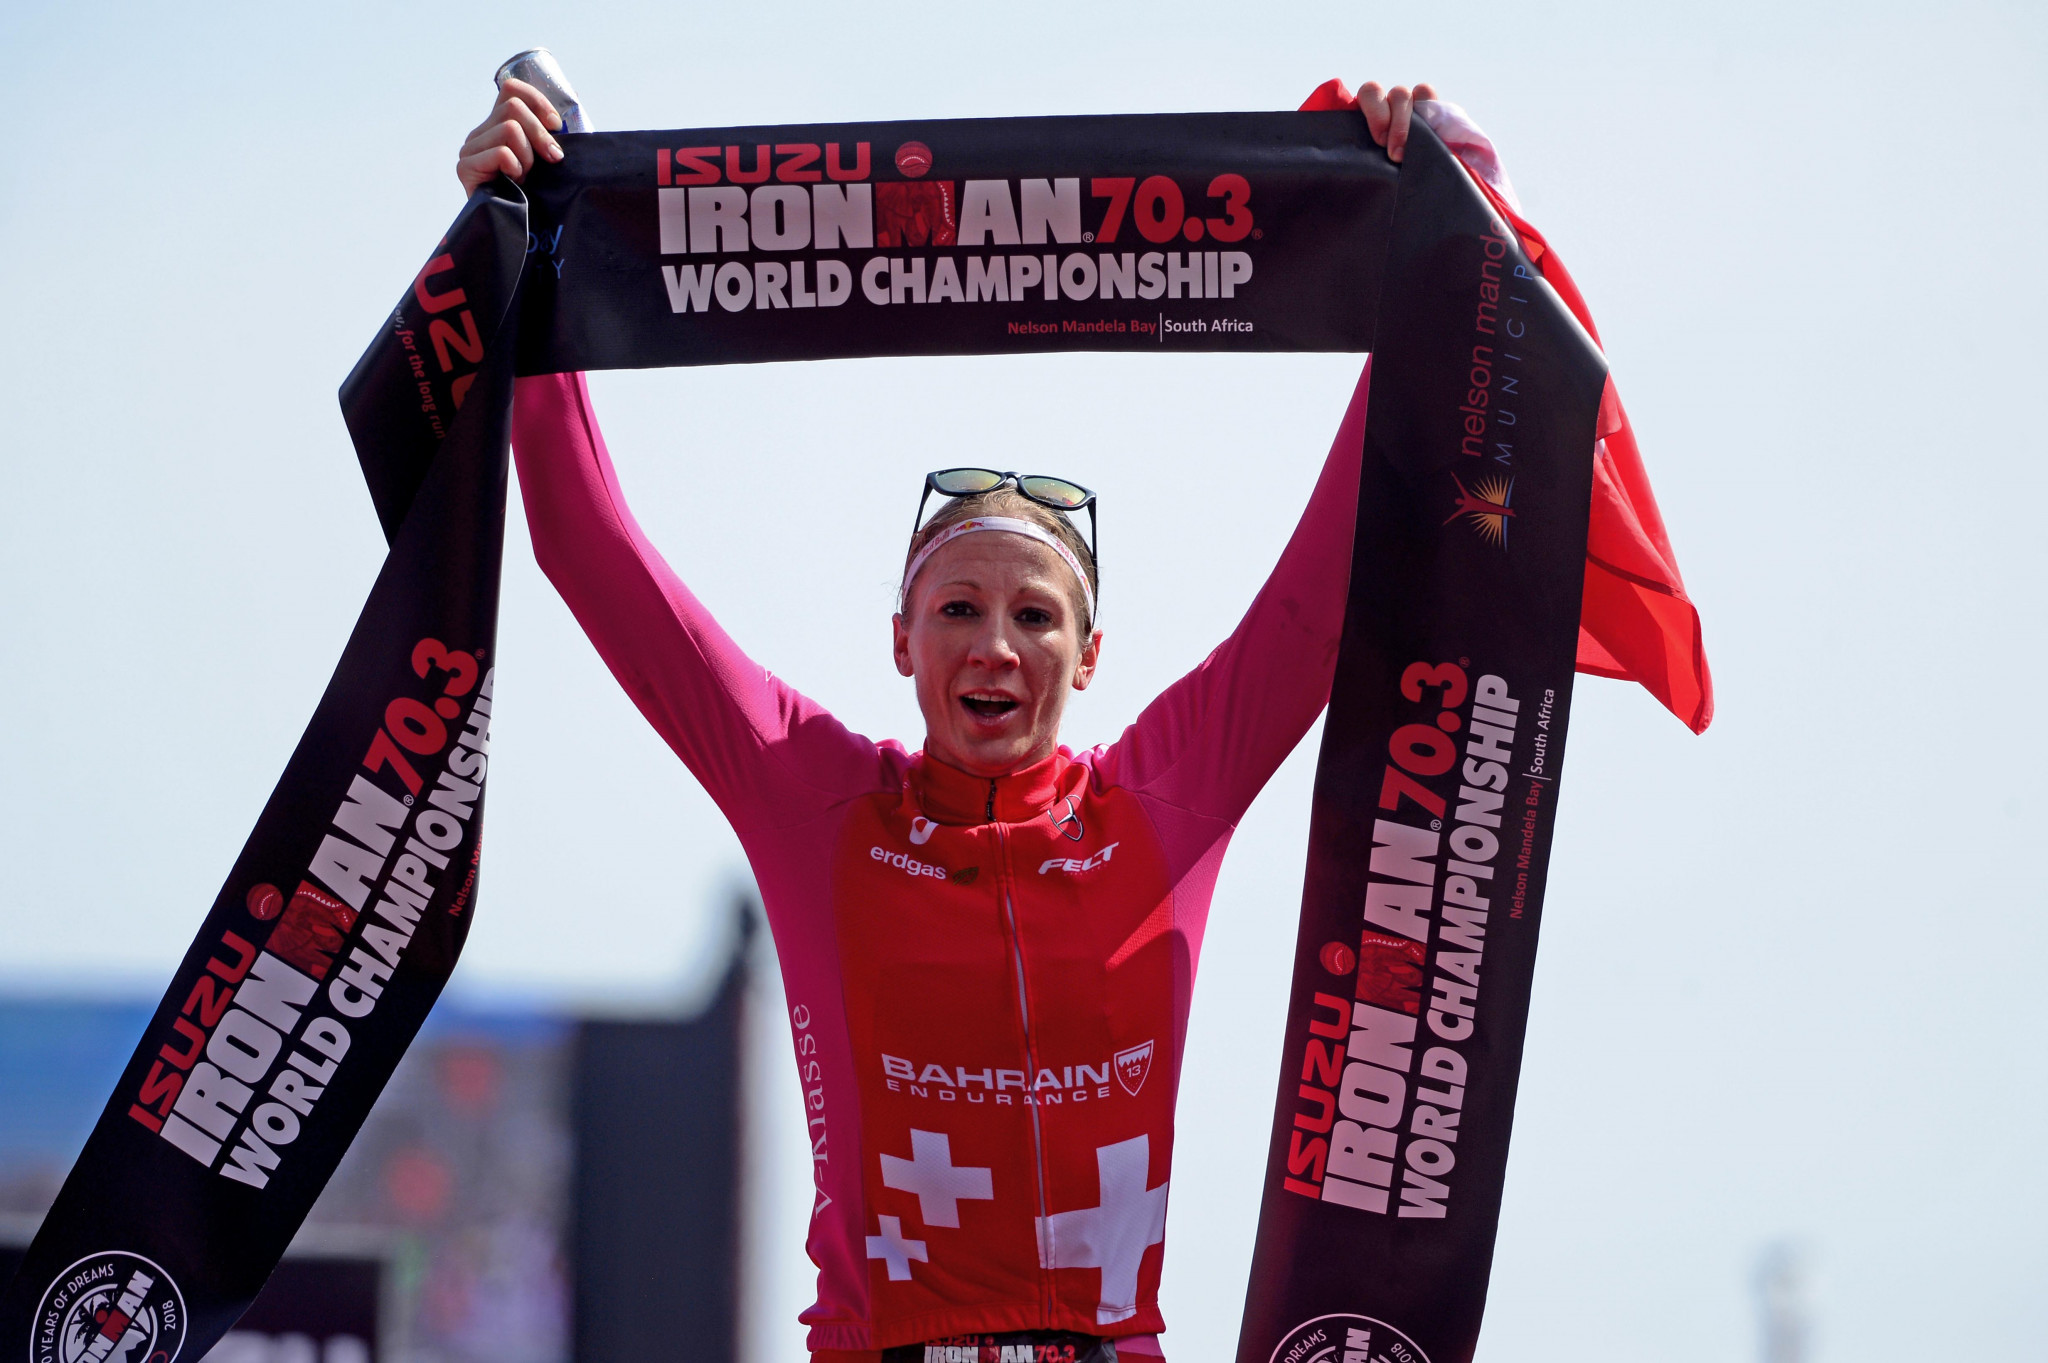 Ryf wins fourth Ironman 70.3 World Championship title in South Africa